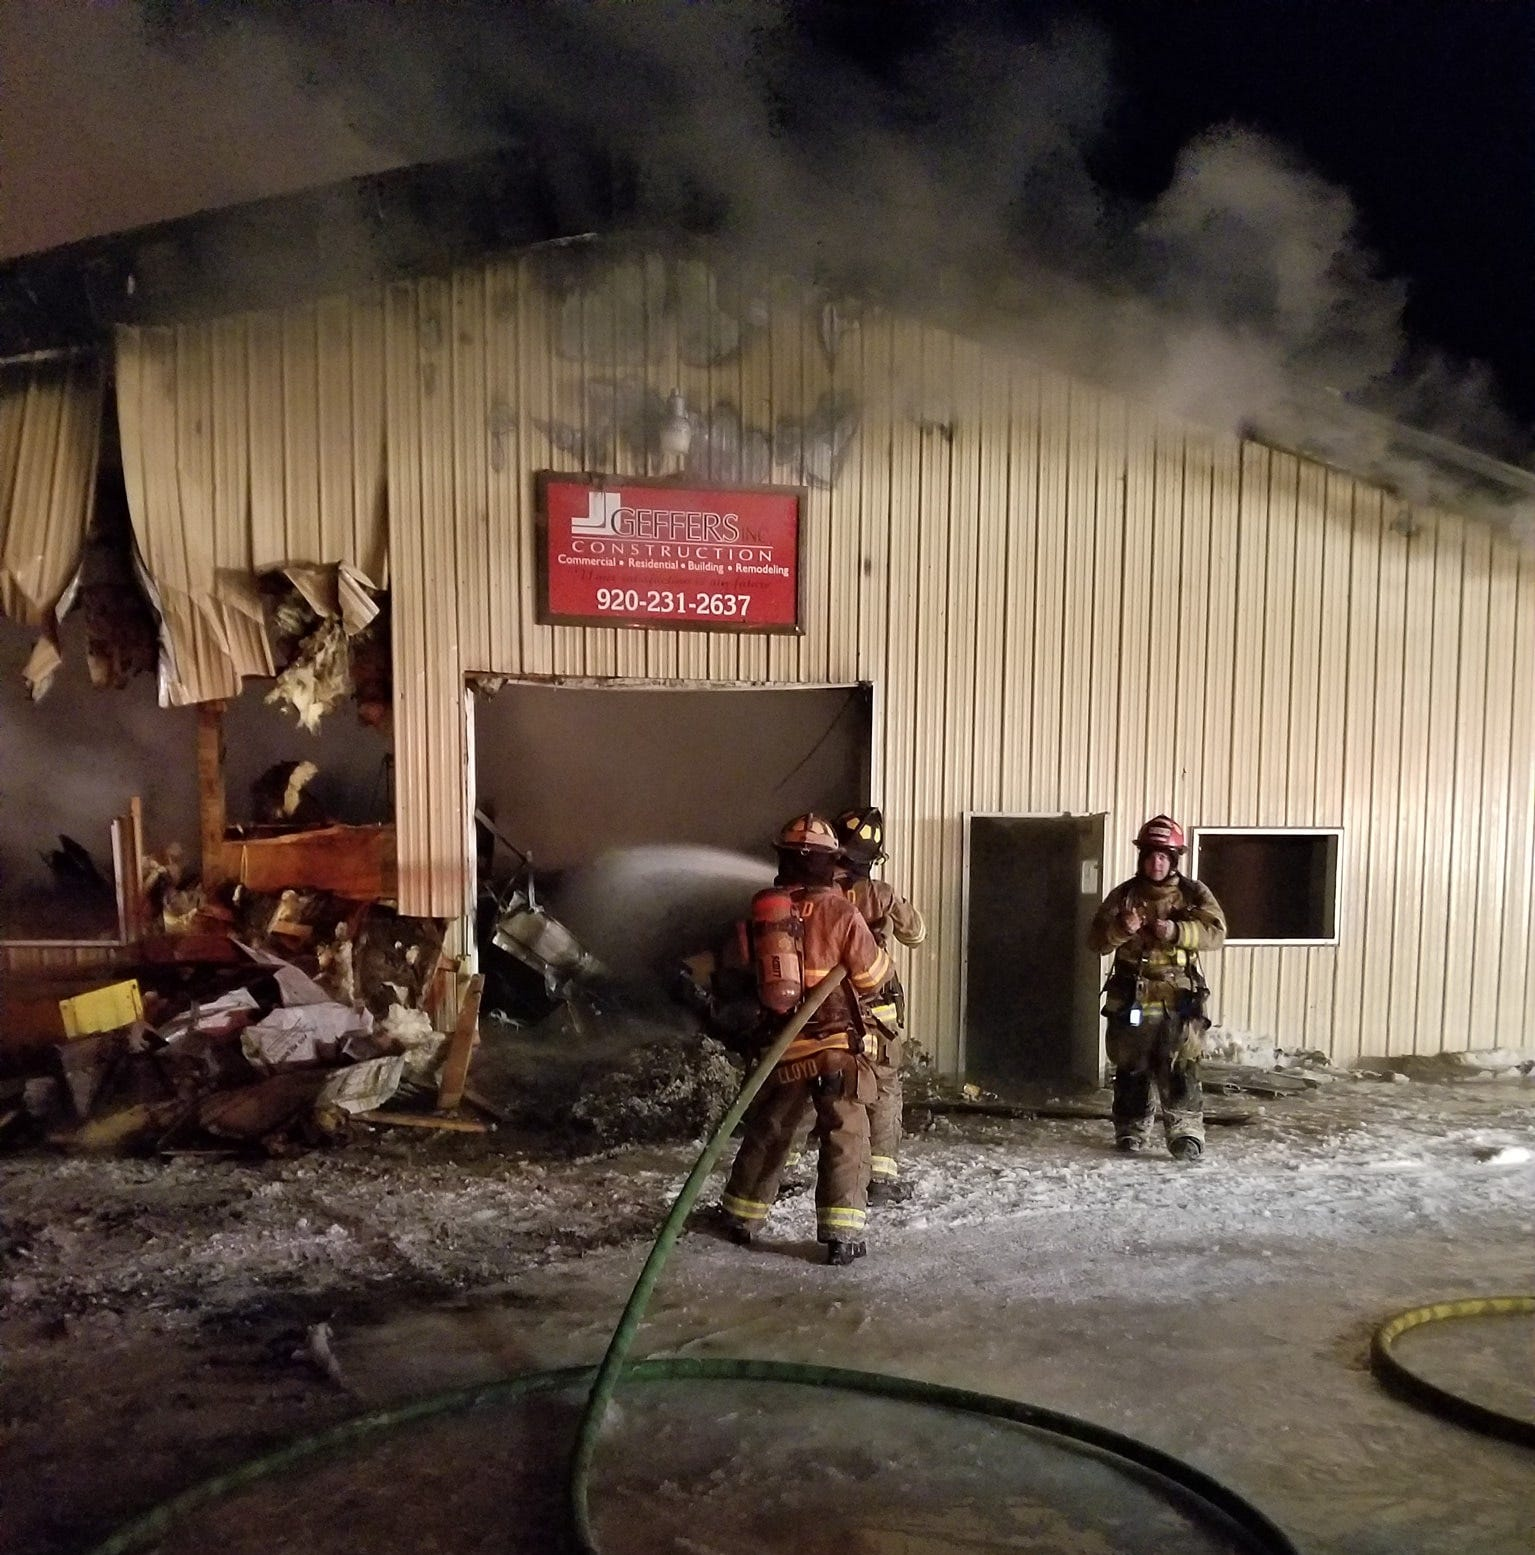 Neenah area construction company destroyed in overnight fire